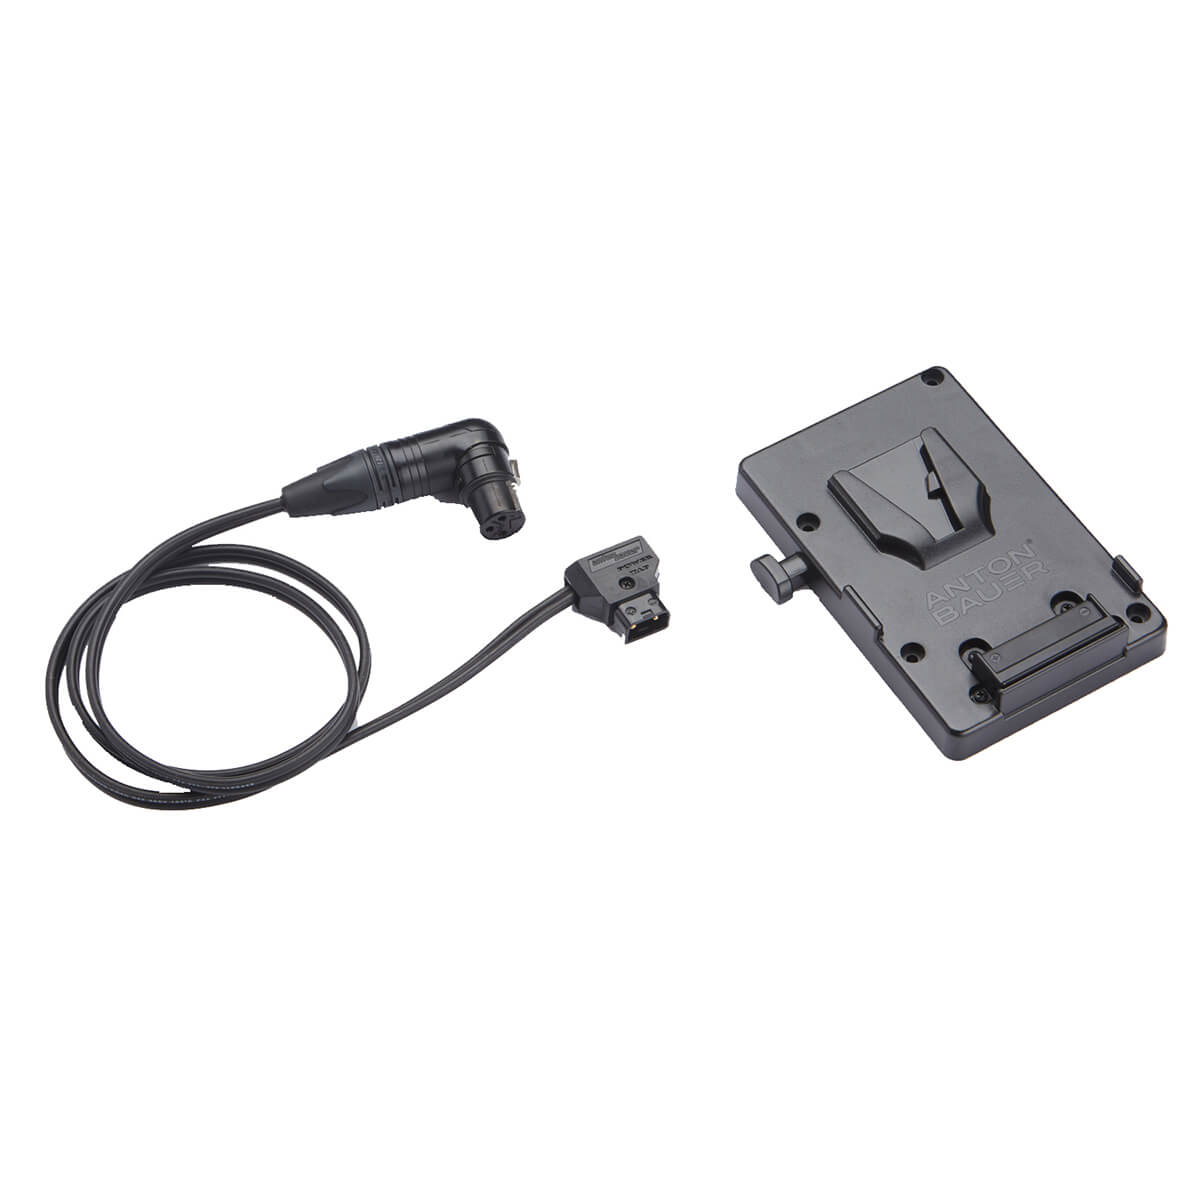 hight resolution of  3 pin xlr cable 1 battery adapter v lock mount